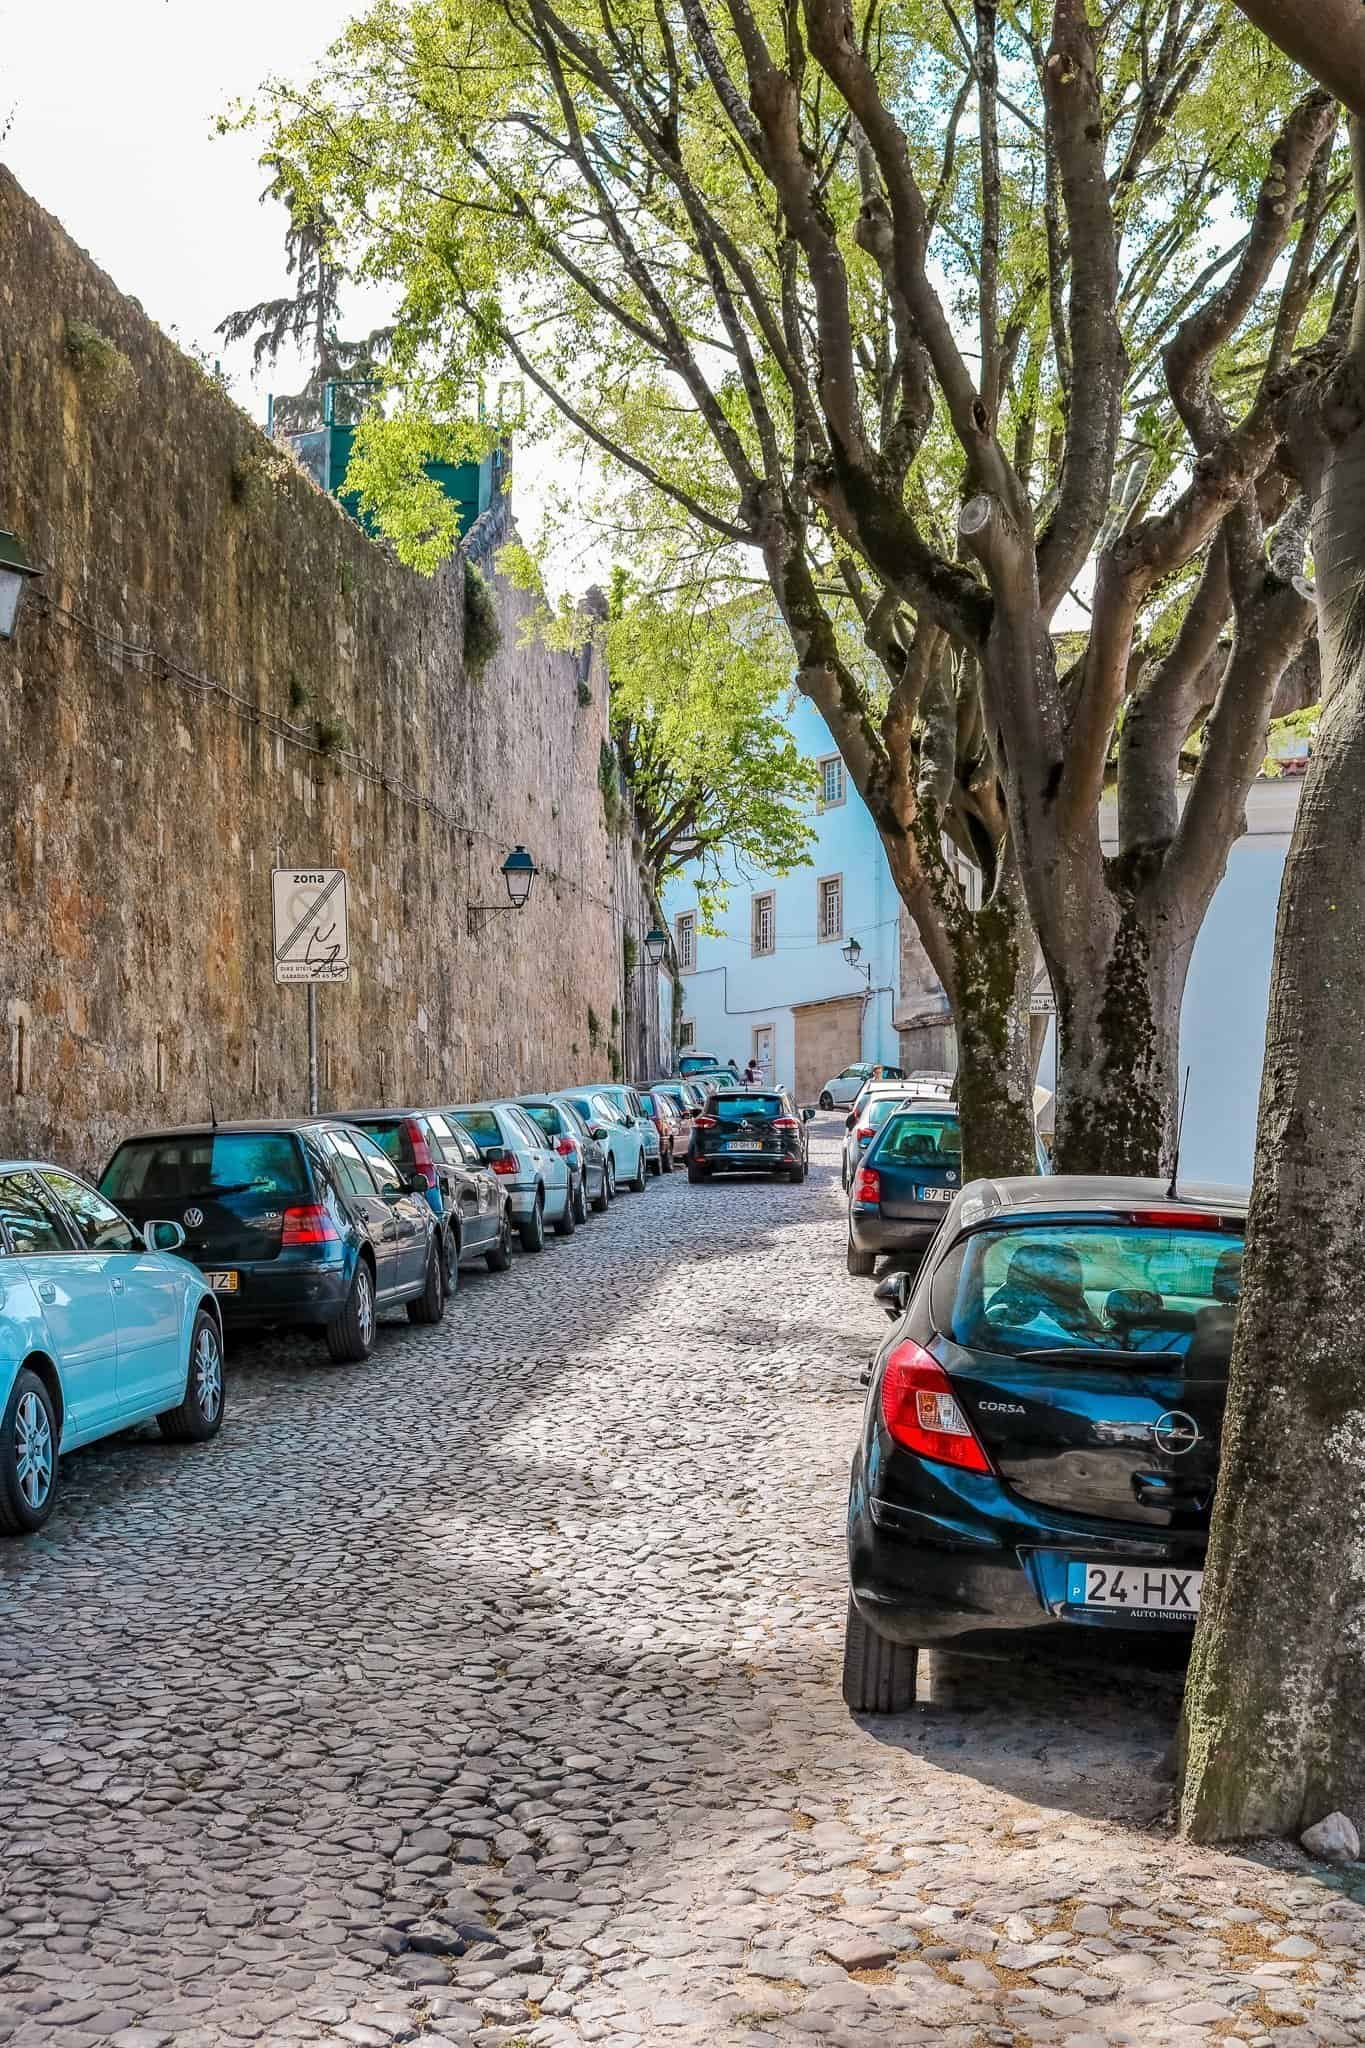 Narrow Streets in Portugal | The Next Trip